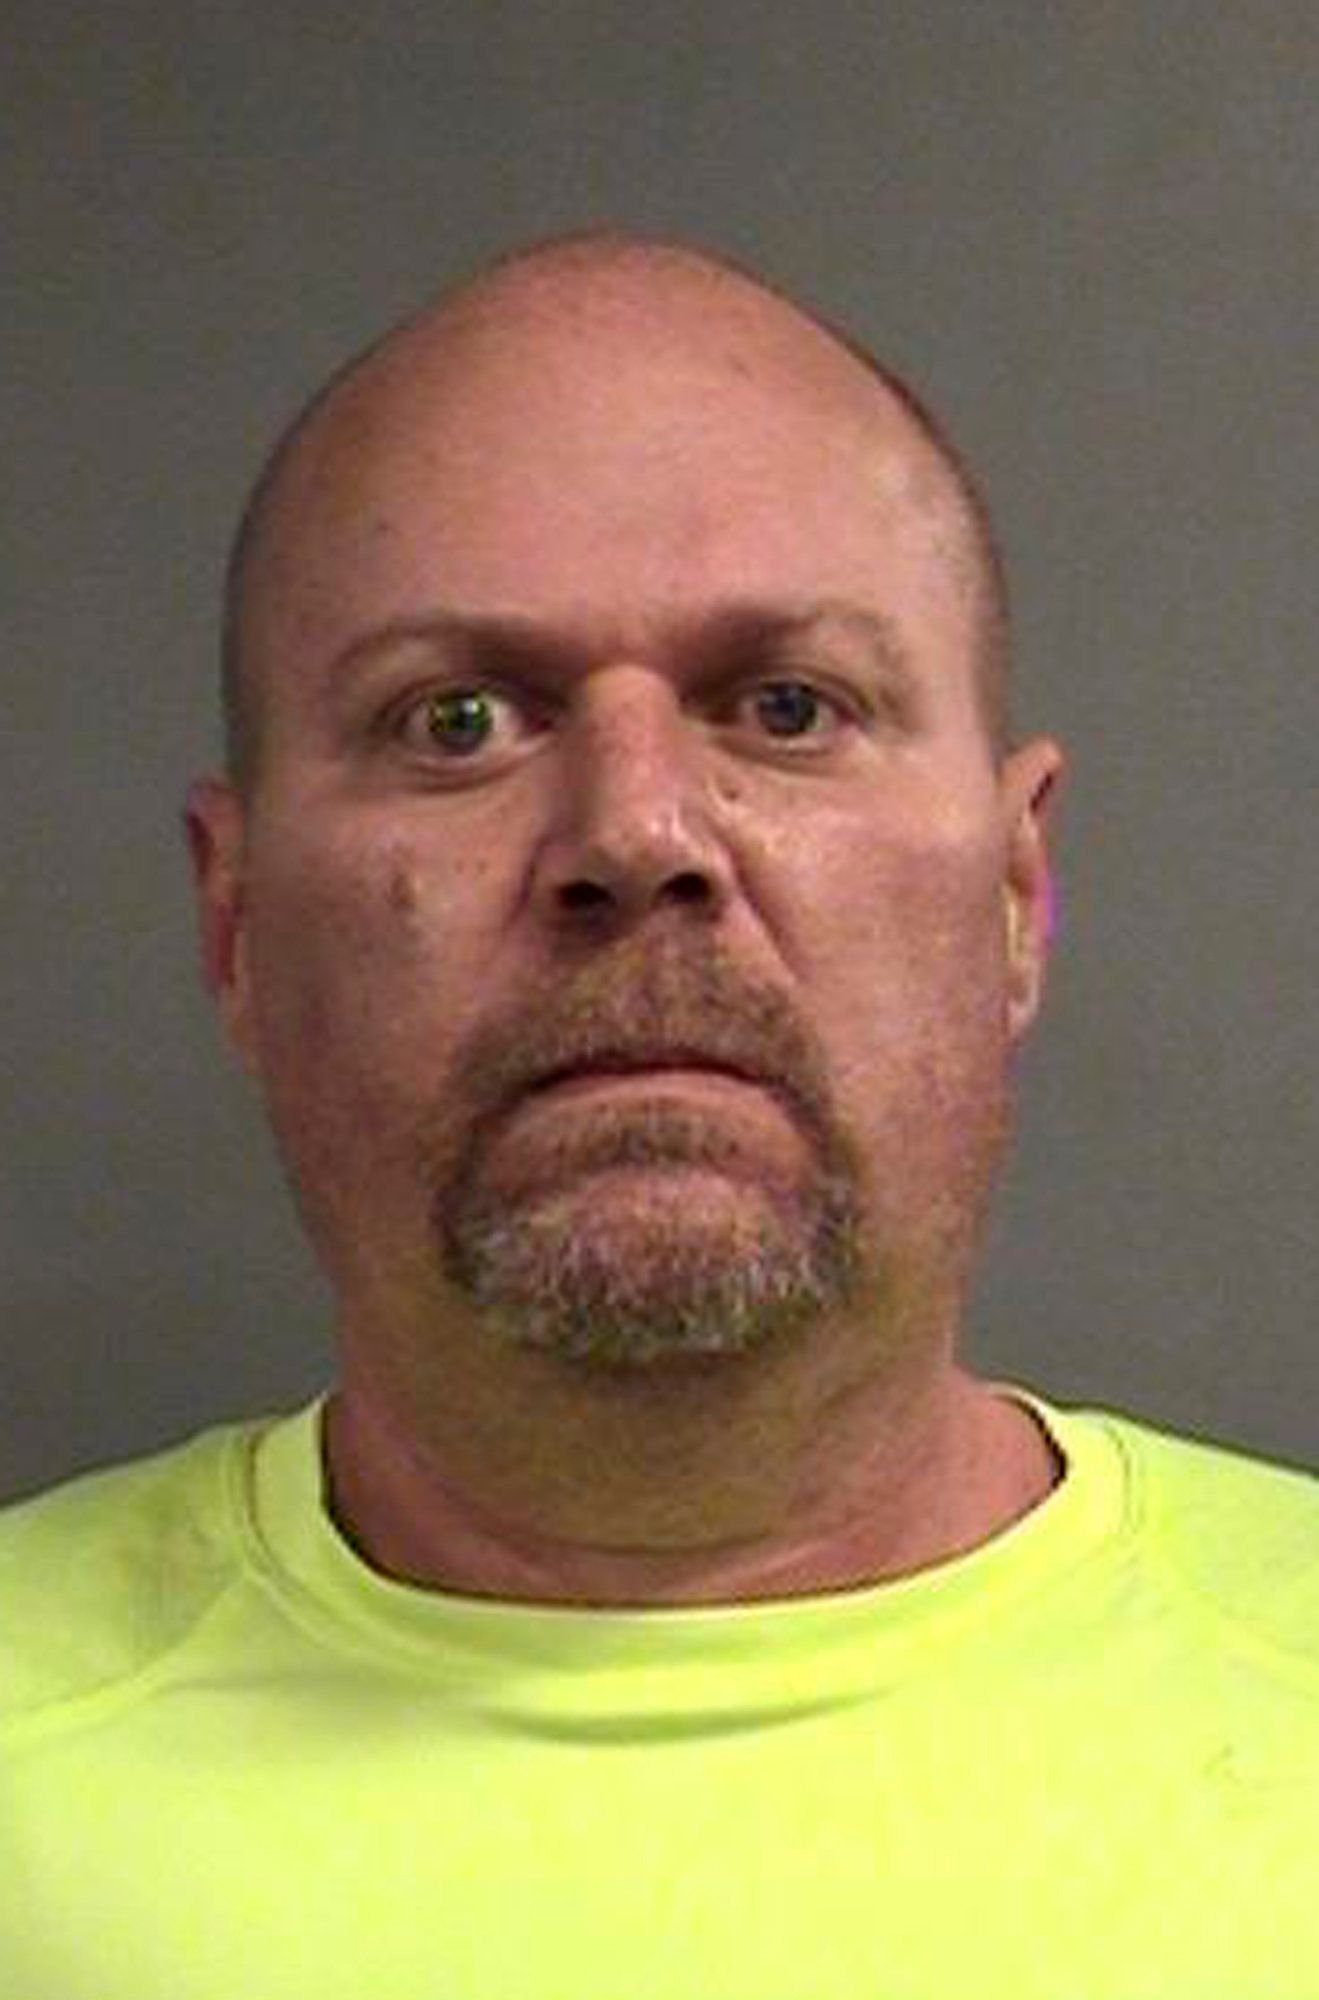 Gregory Alan Bush is pictured in a photo provided by the Louisville Metro Department of Corrections.